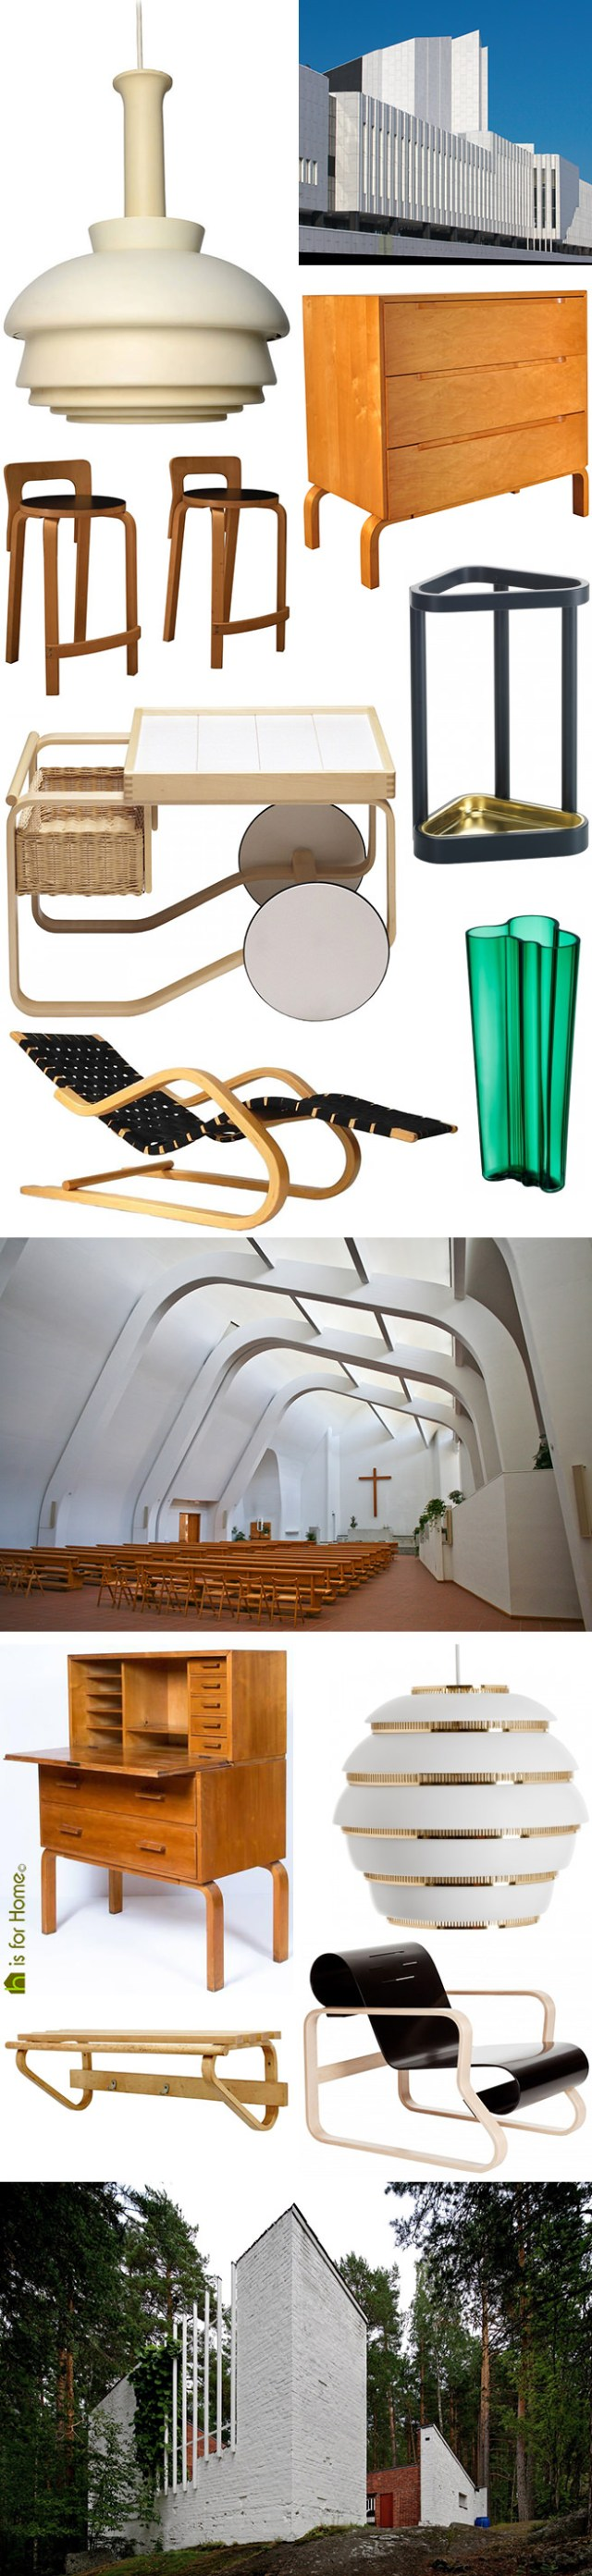 Mosaic of Alvar Aalto designs | H is for Home